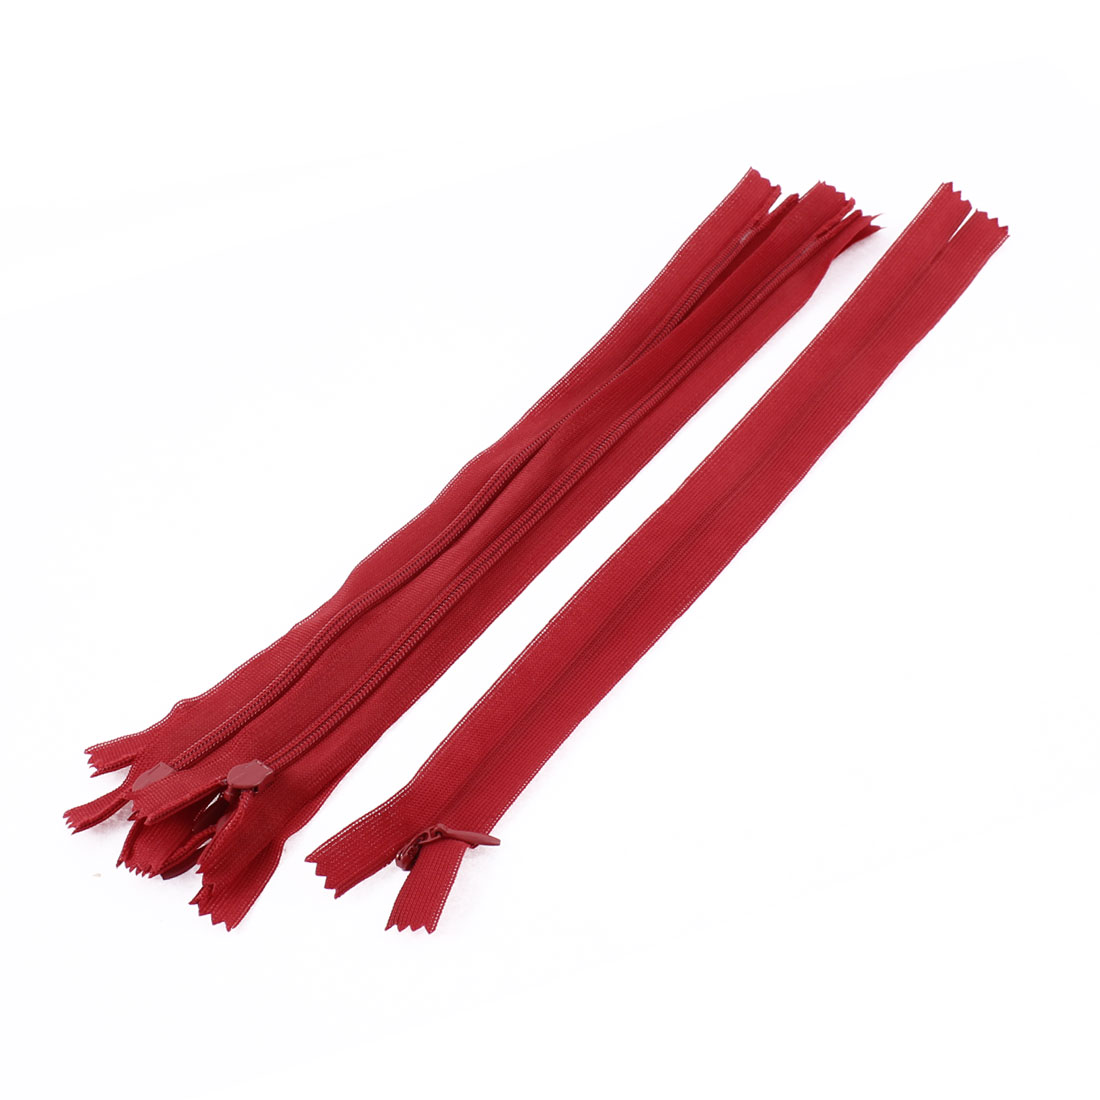 Clothes Invisible Nylon Coil Zippers Tailor Sewing Craft Tool Red 25cm 5 Pcs